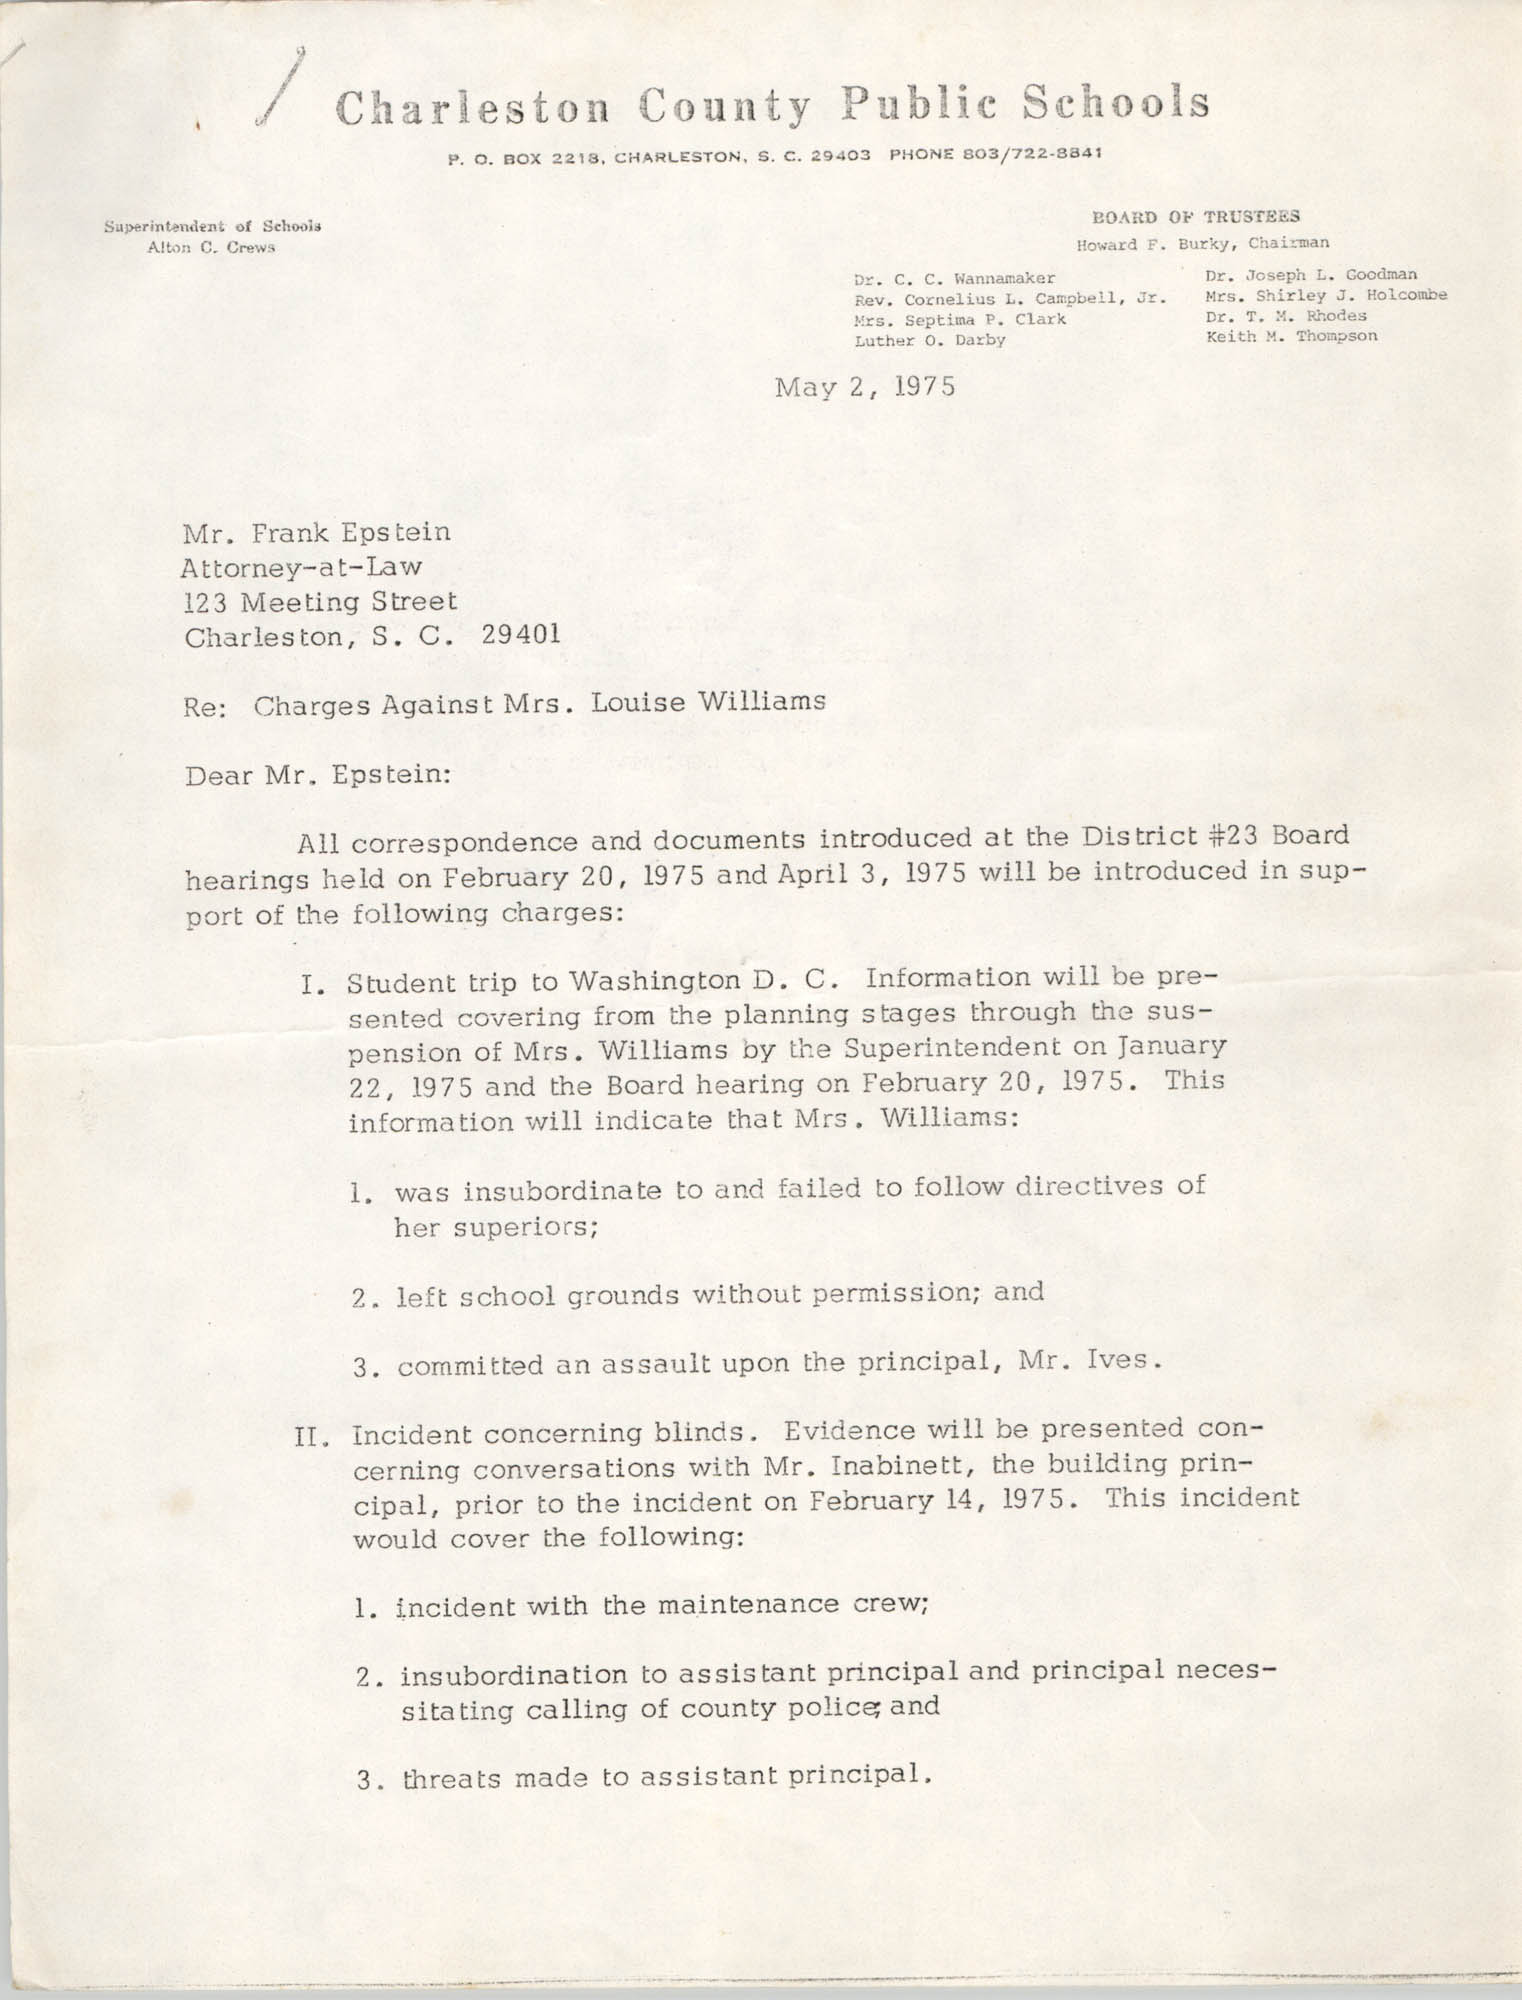 Letter from William B. Todd to Frank Epstein, May 2, 1975